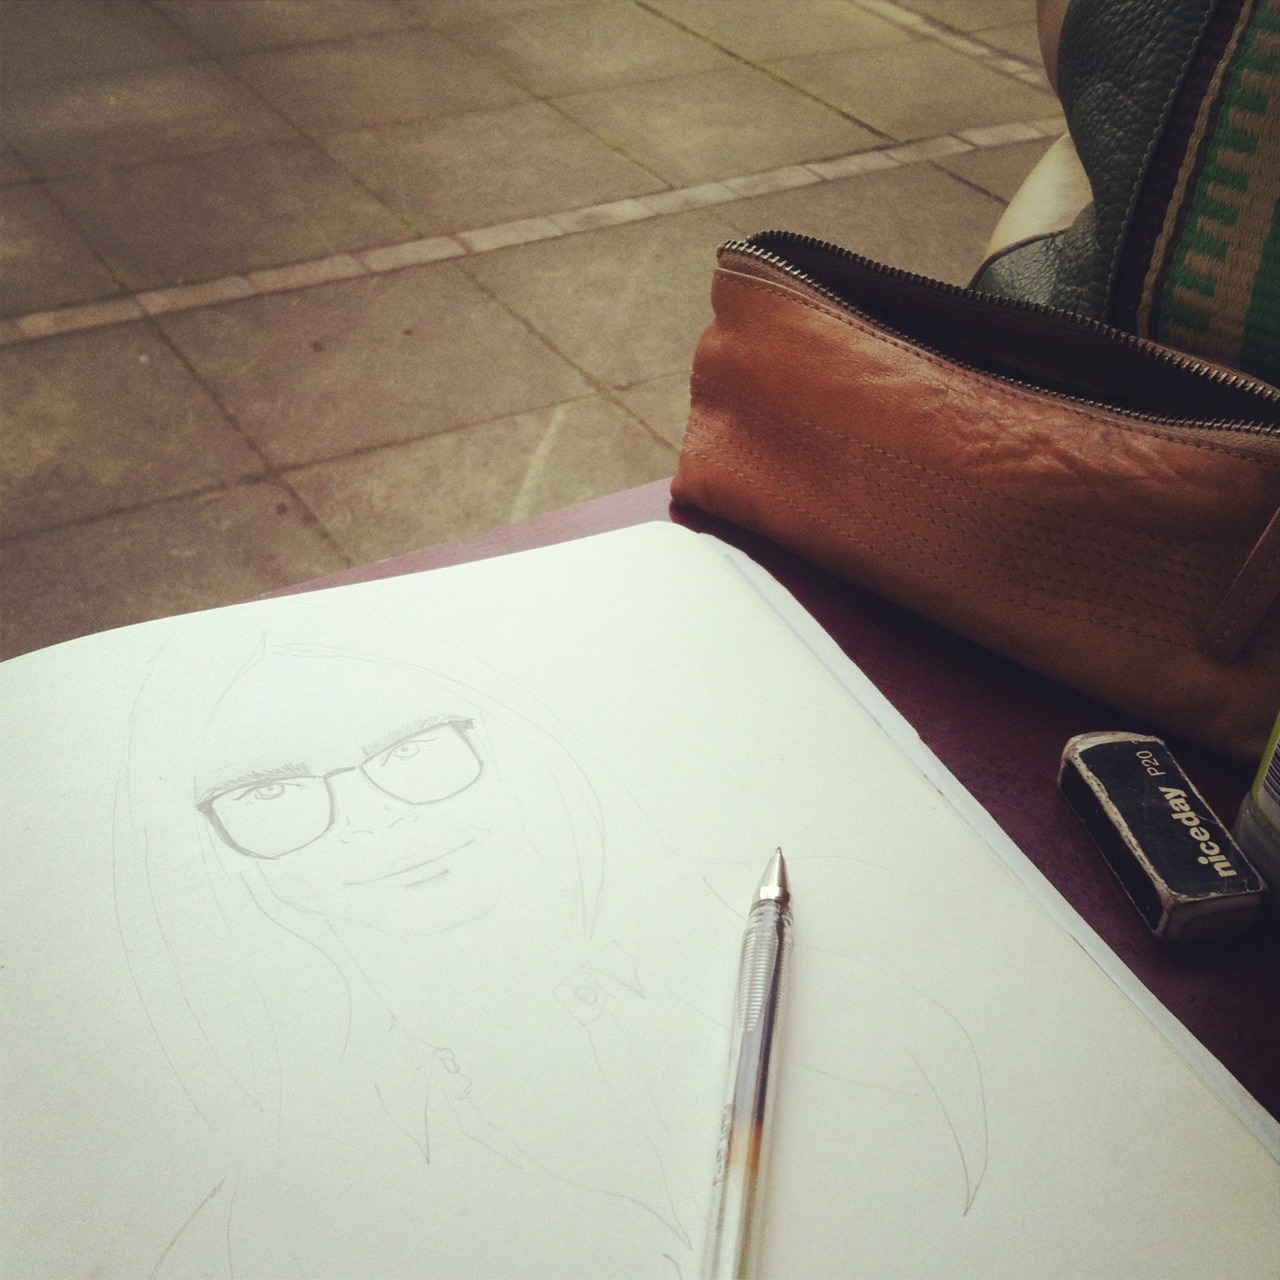 Oh how I love Fridays. Sitting in Bankside @starbucksuk supping a chai latte, people watching & sketching model of the moment @caradelevinge. Wish it was Friday everyday!